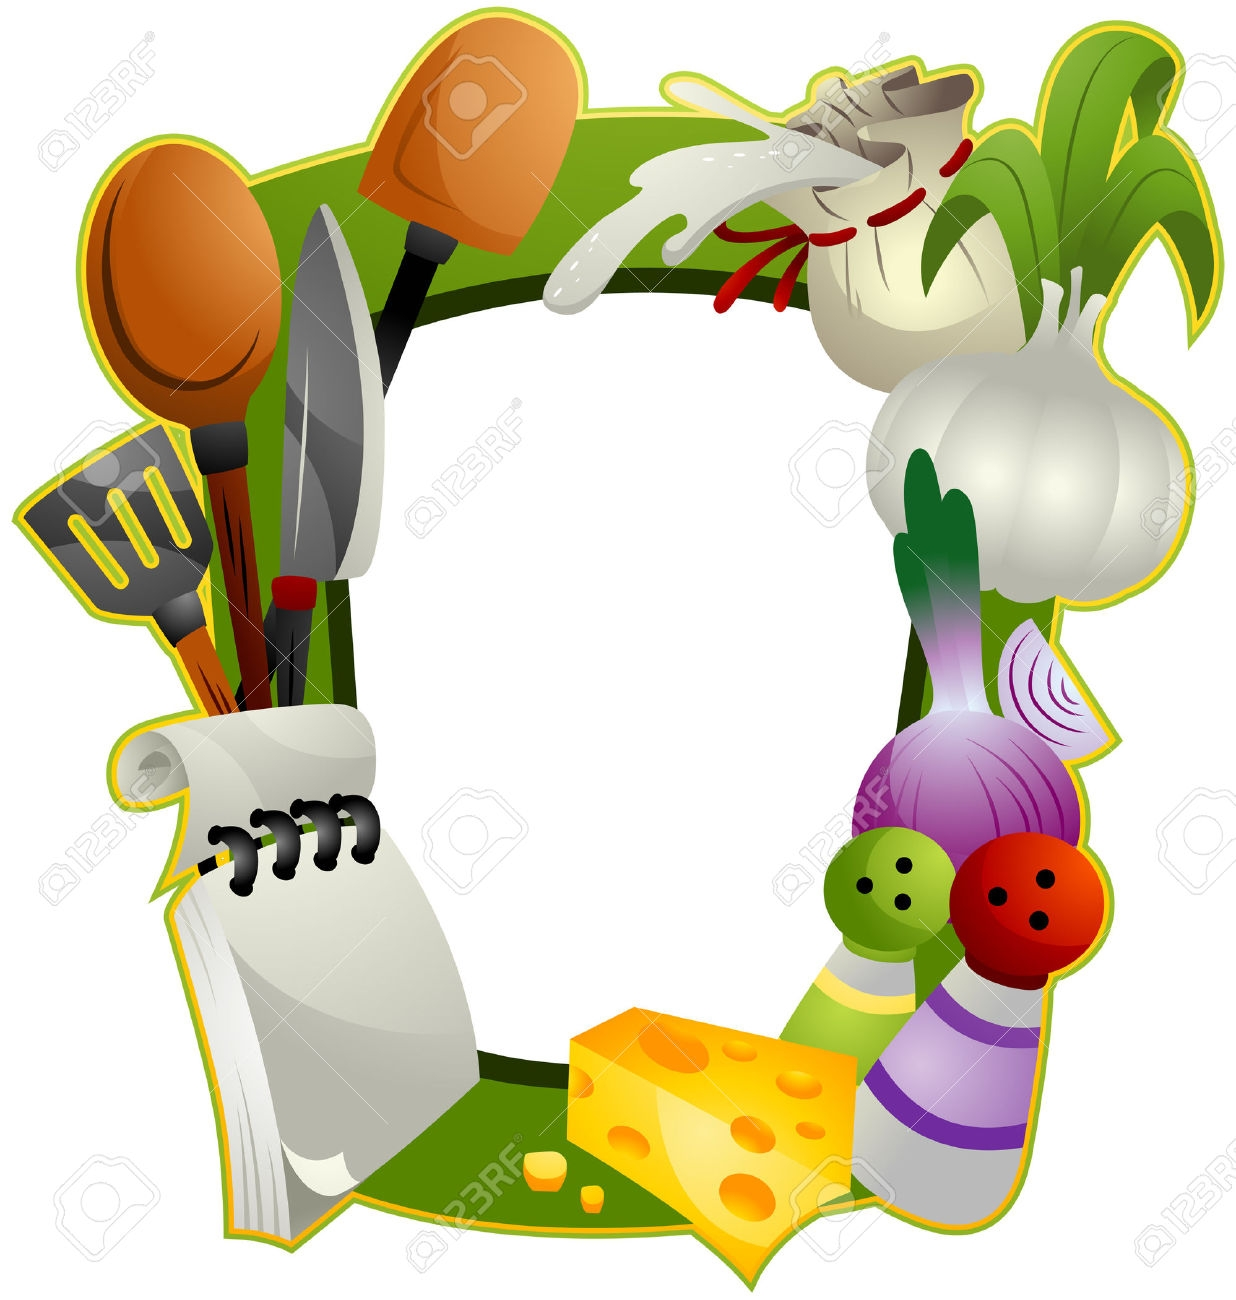 Clipart food borders frames.